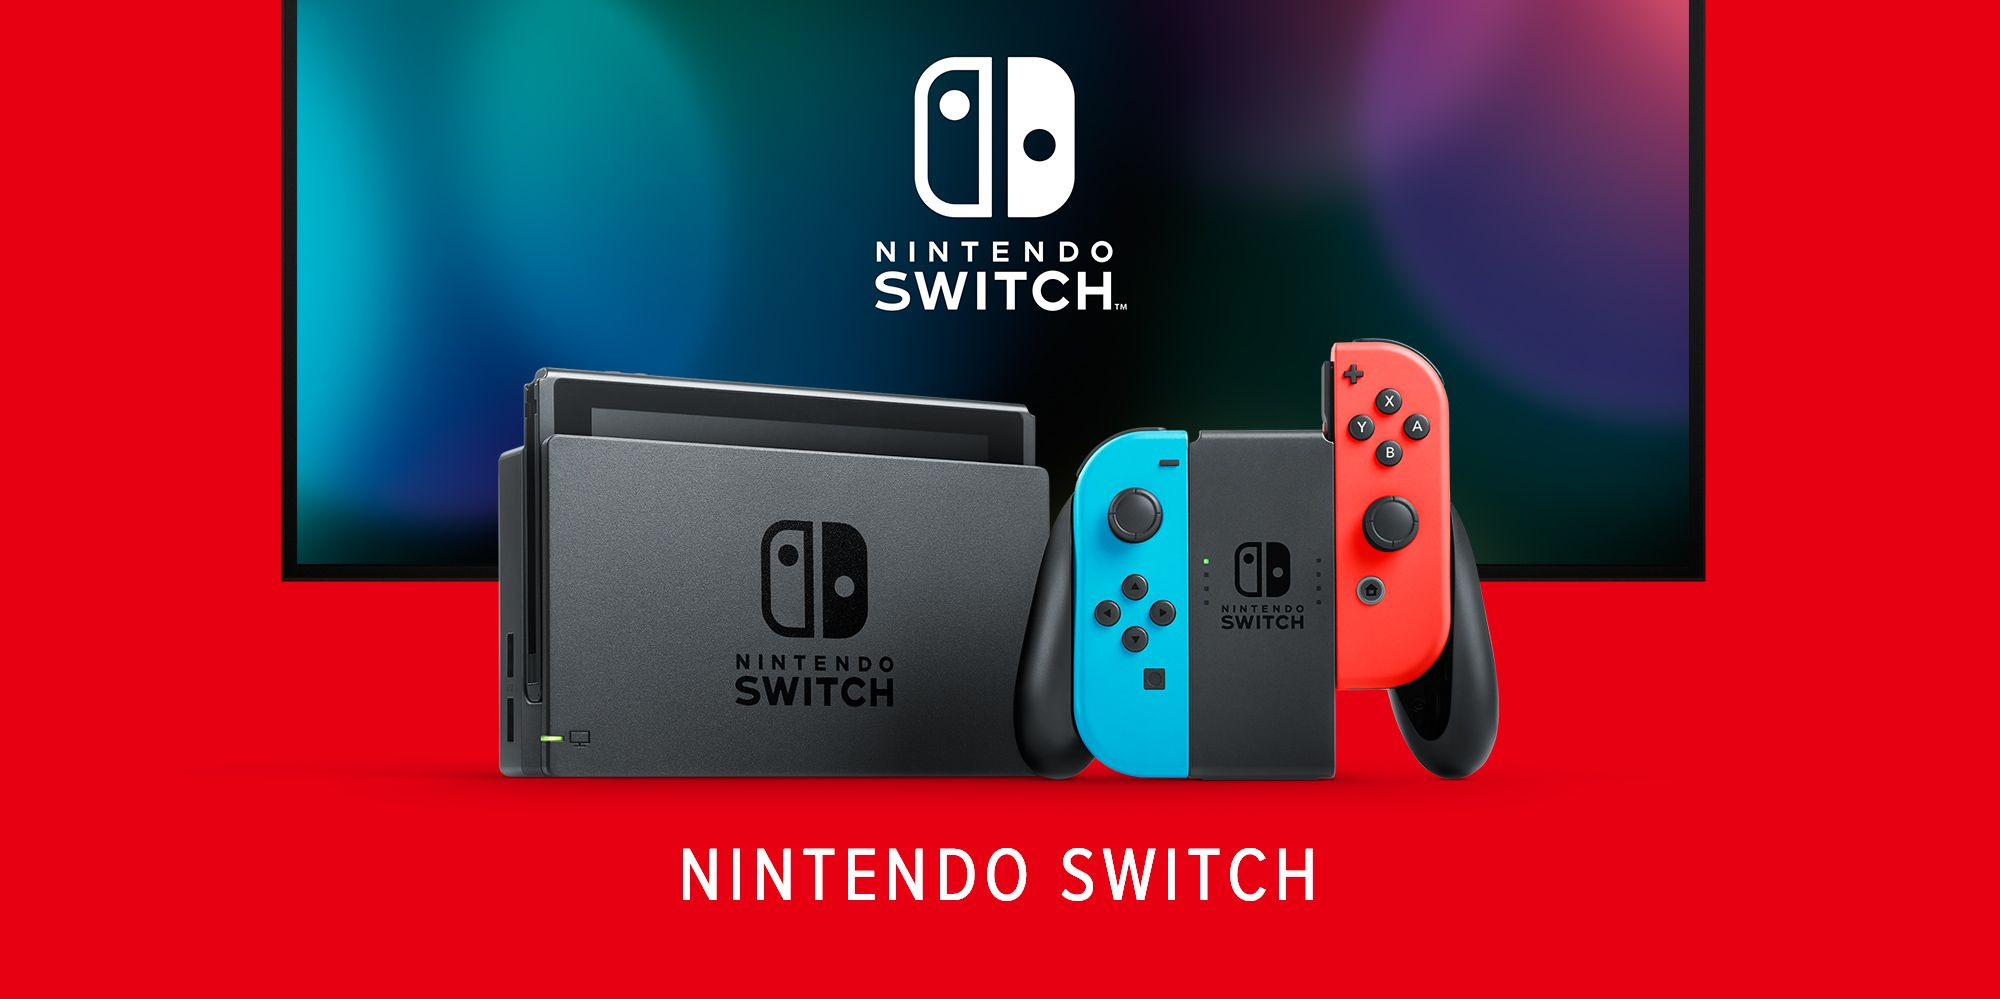 Nintendo Switch Nintendo Switch Nintendo Nintendo Switch Games